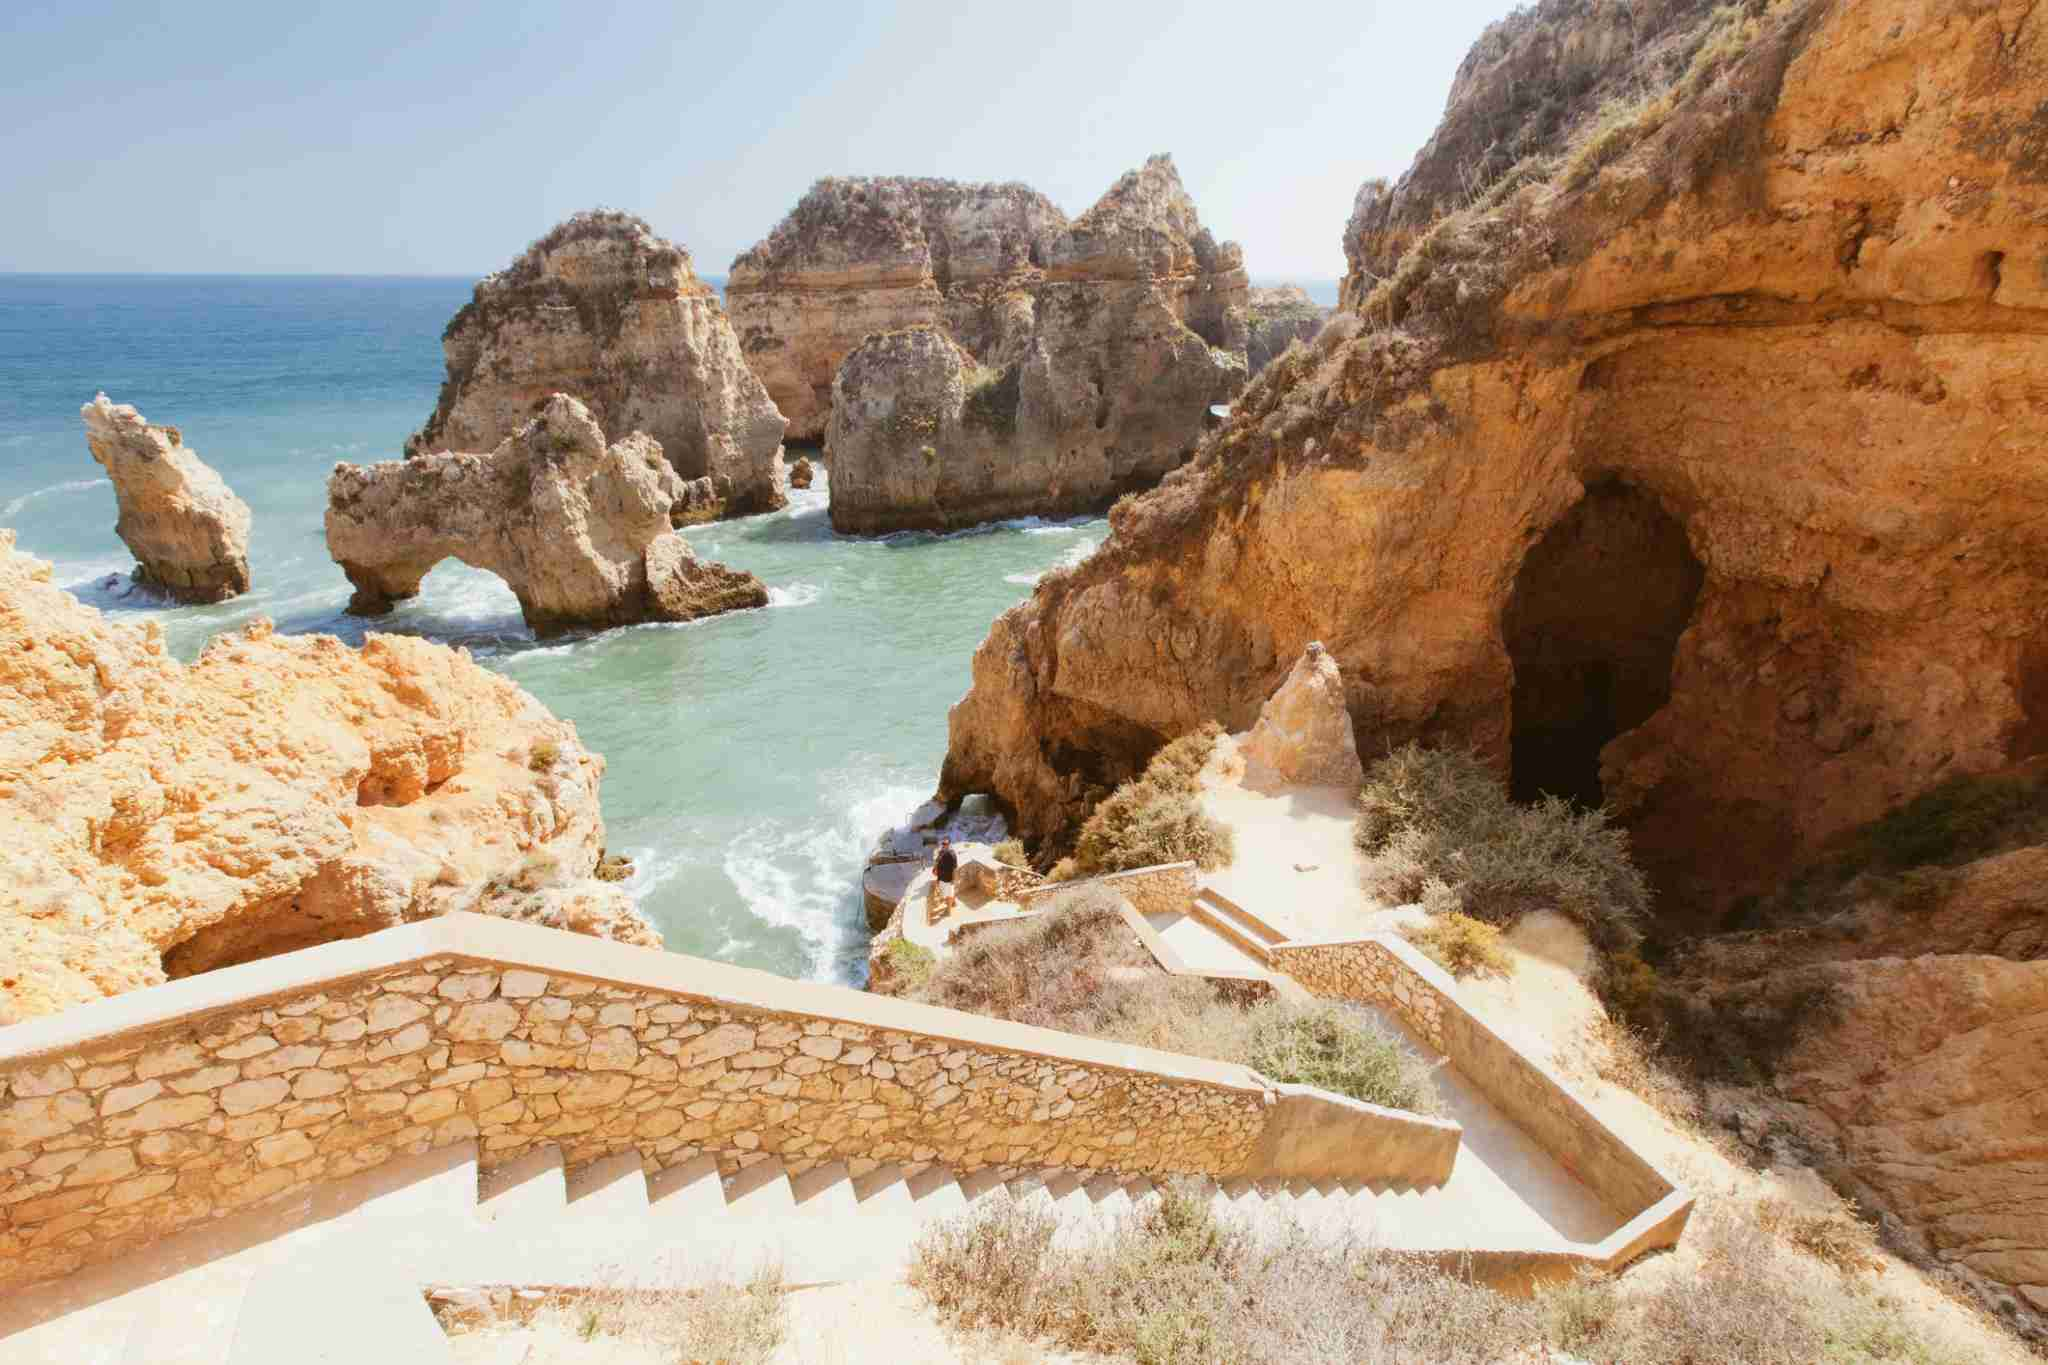 Beach in Lagos, Algarve, Portugal. (Image by M Swiet Productions / Getty Images)